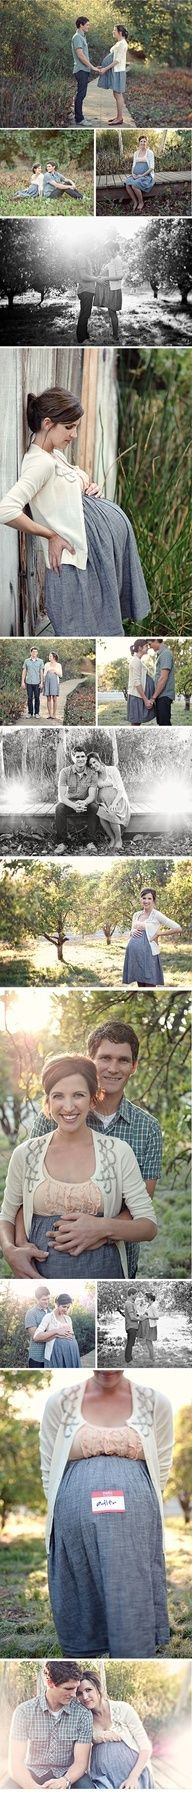 adorable Mutterschaftsaufnahmen  #Adorable # Maternity #shots    babybauch shoot…